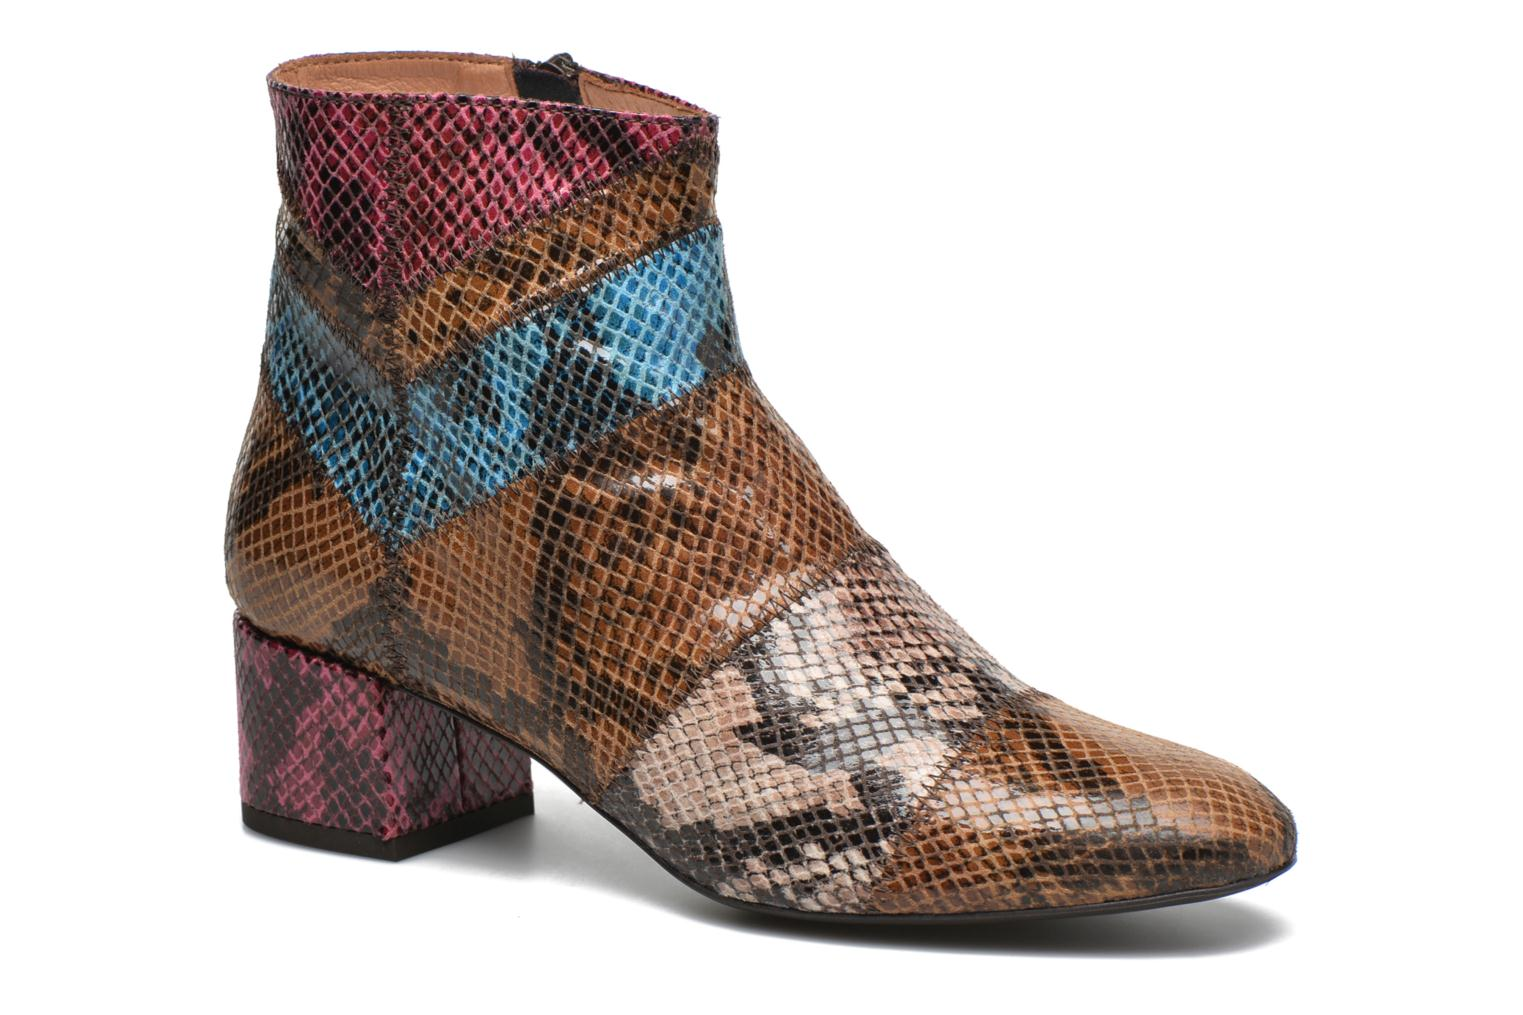 Bottines et boots Made by SARENZA See Ya Topanga #1 Multicolore vue droite